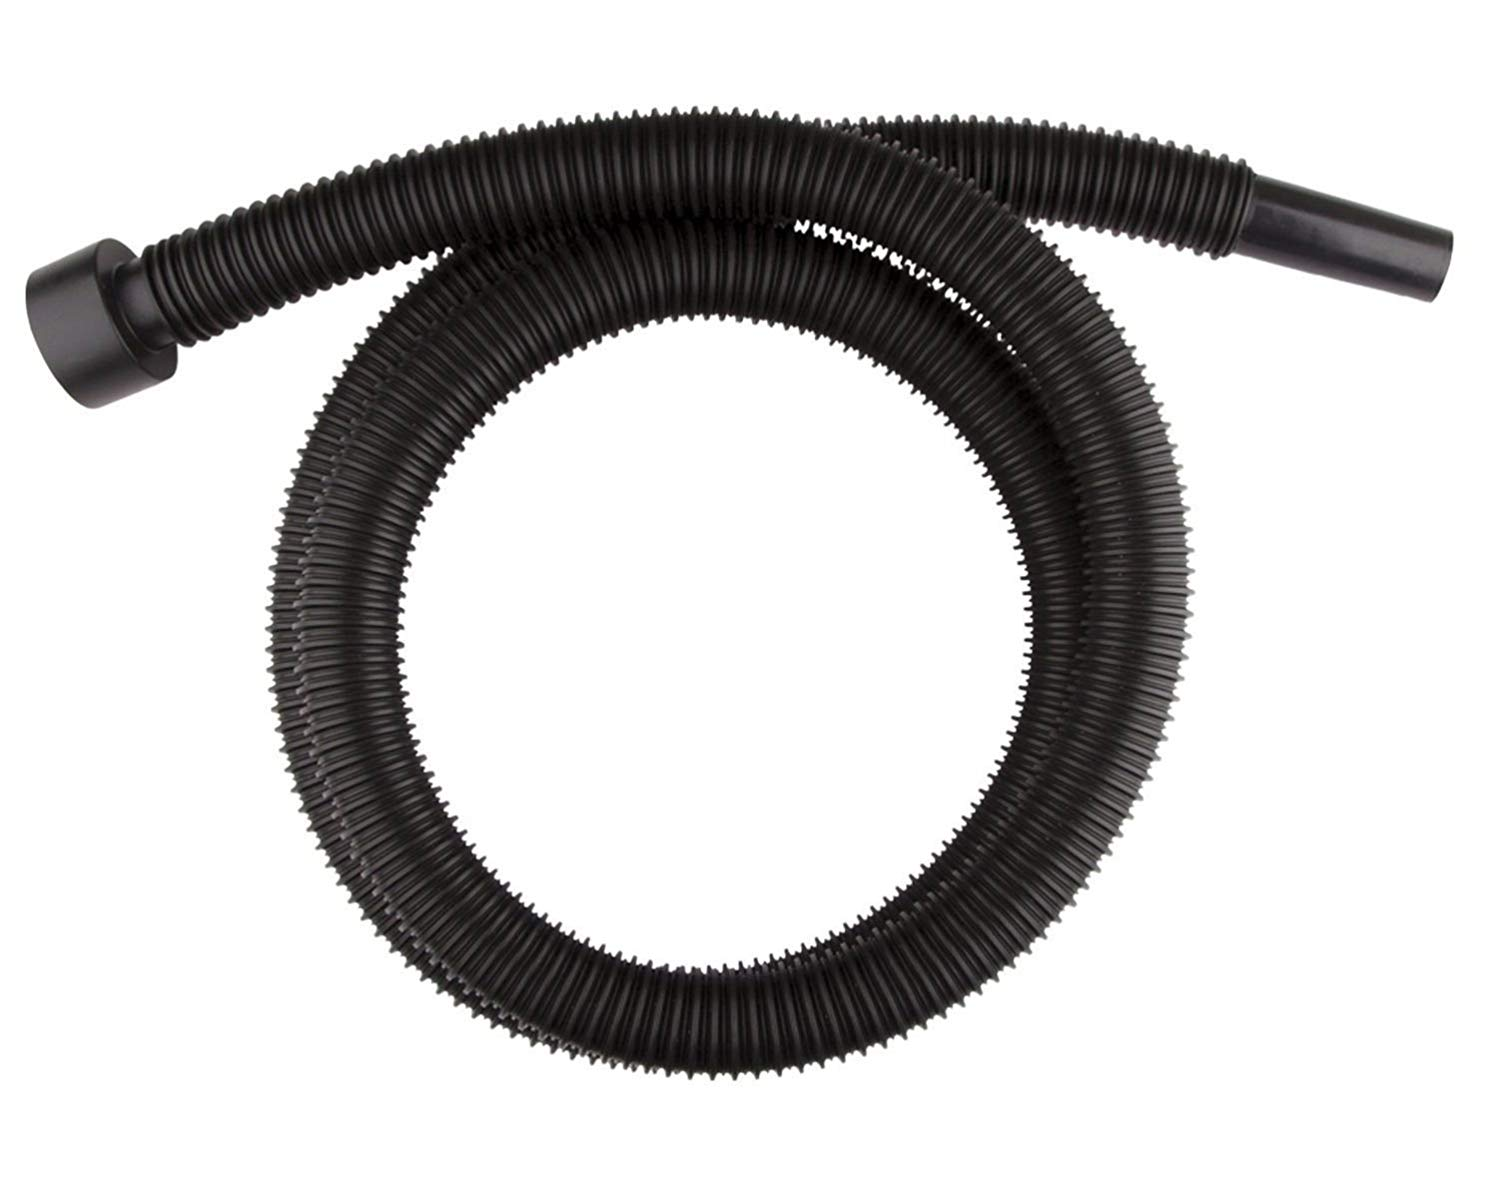 KHY 10 Feet Hose Replacement for Shop Vac Craftsman Ridgid Wet & Dry Vacs 2 1/4 Cuff WD650, WD0950,17066, 17761